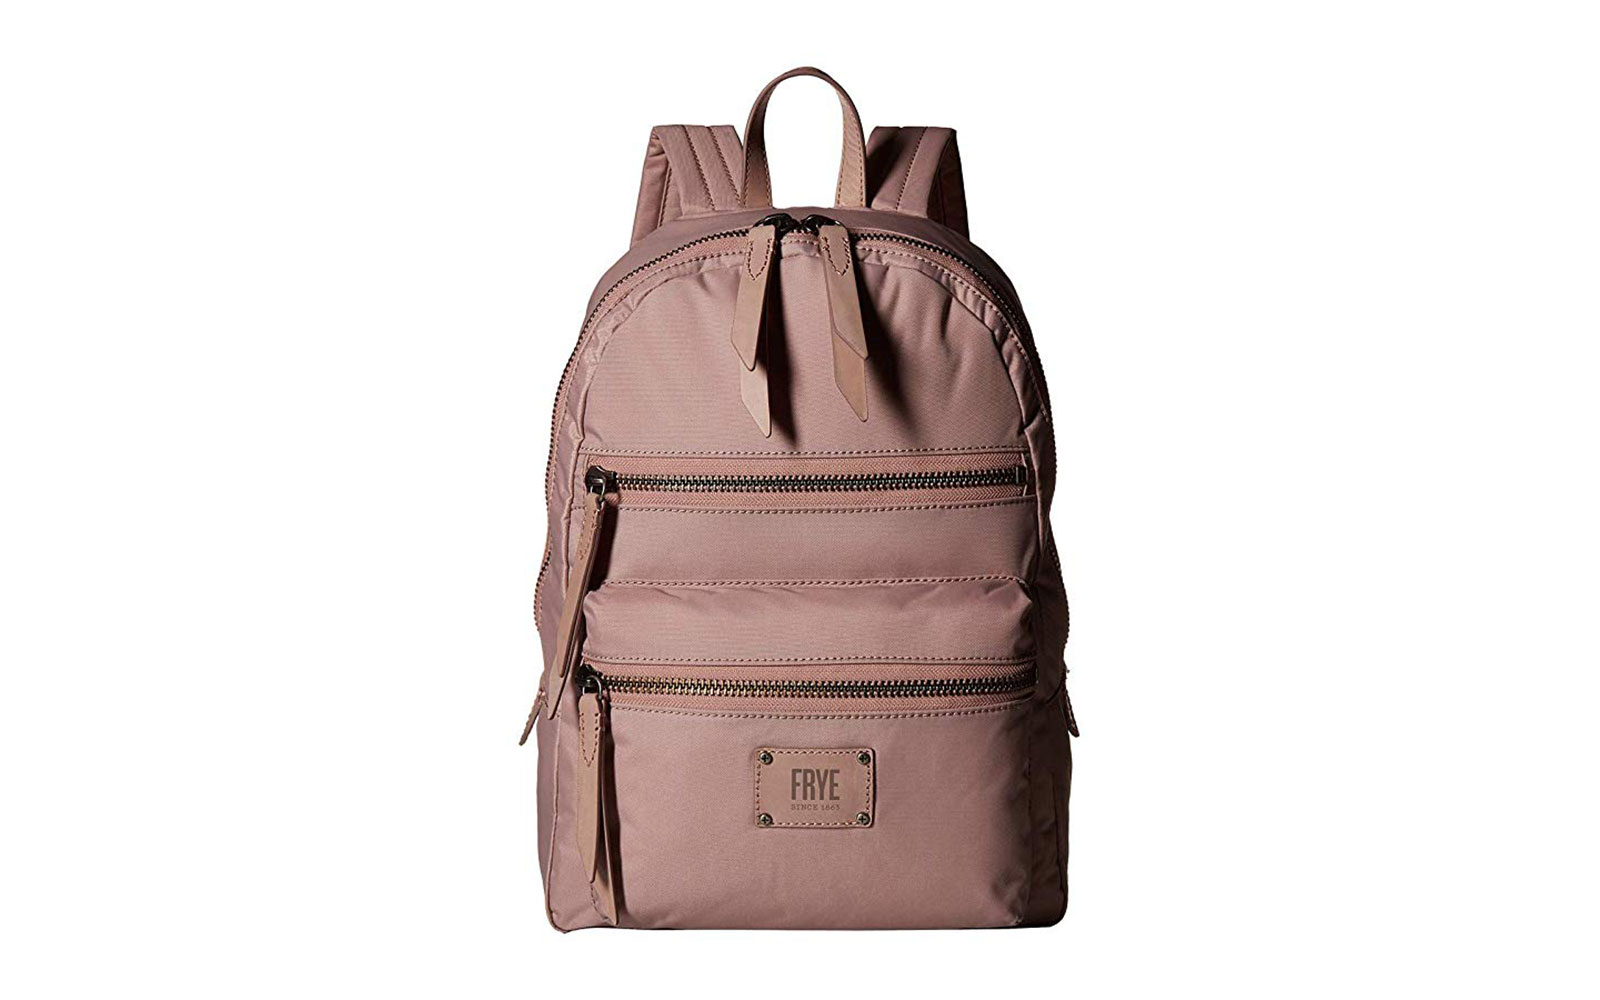 Frye Ivy Backpack